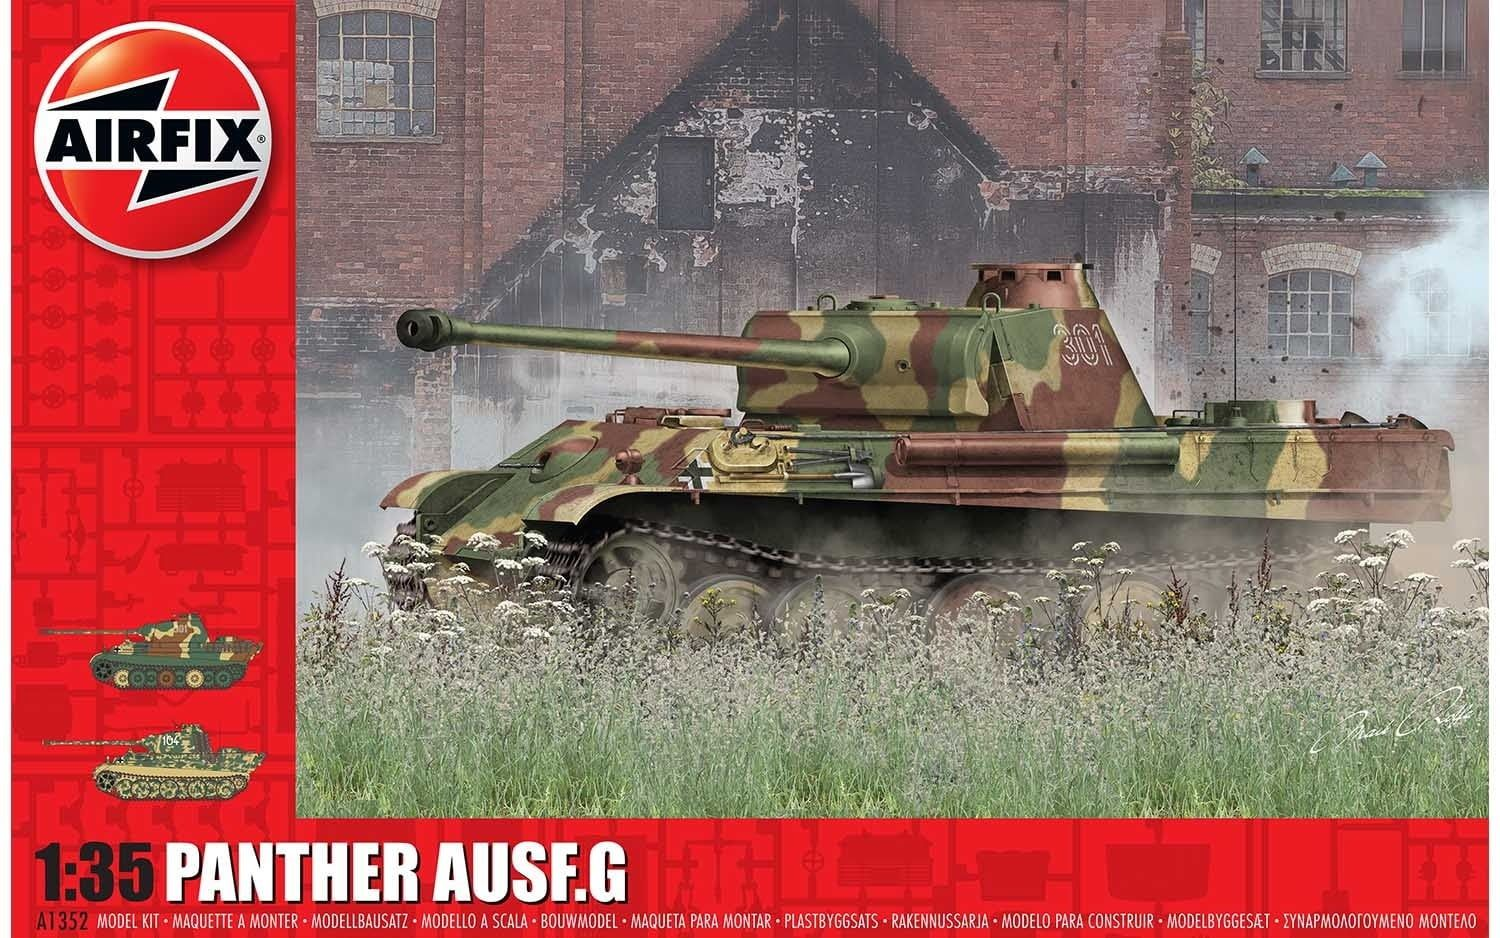 Airfix Panther Ausf G. 1:35 Scale Plastic Model Kit